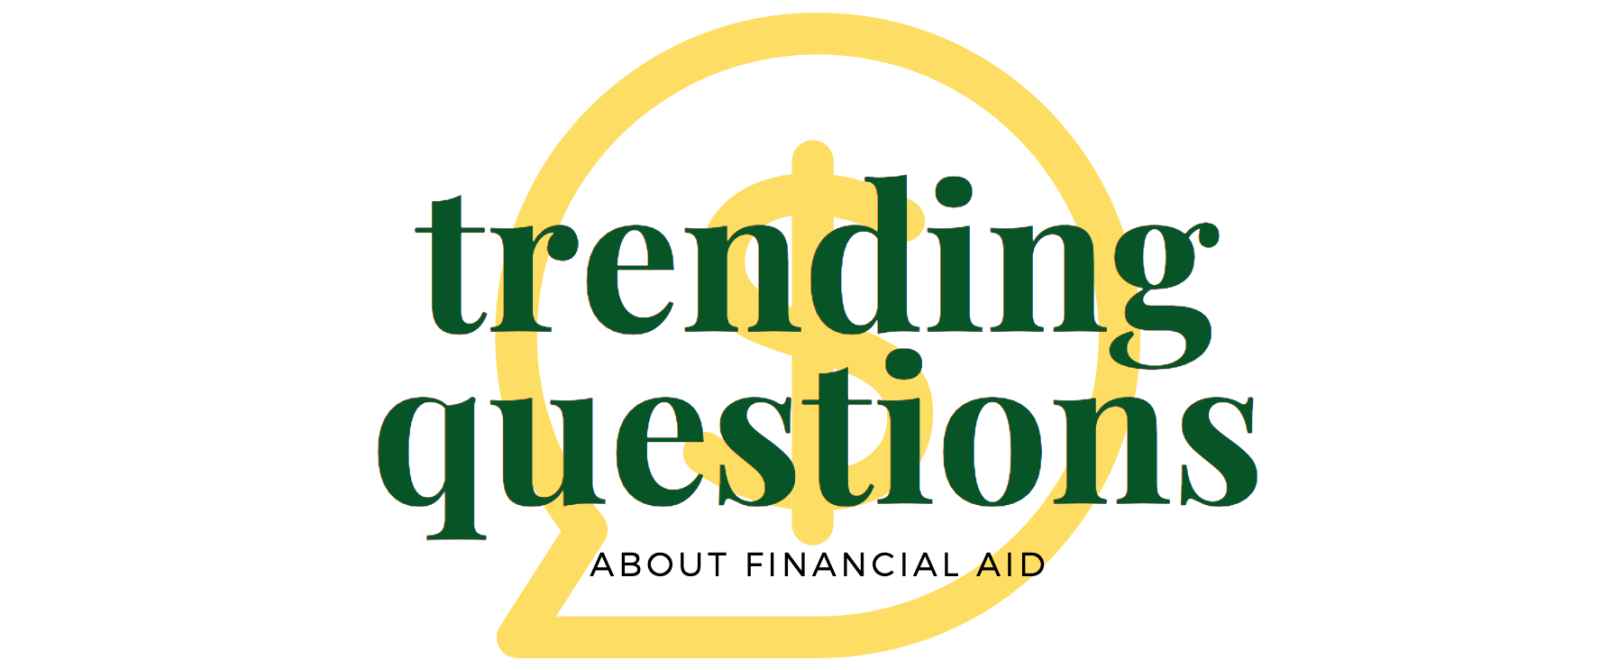 Trending Questions About Financial Aid